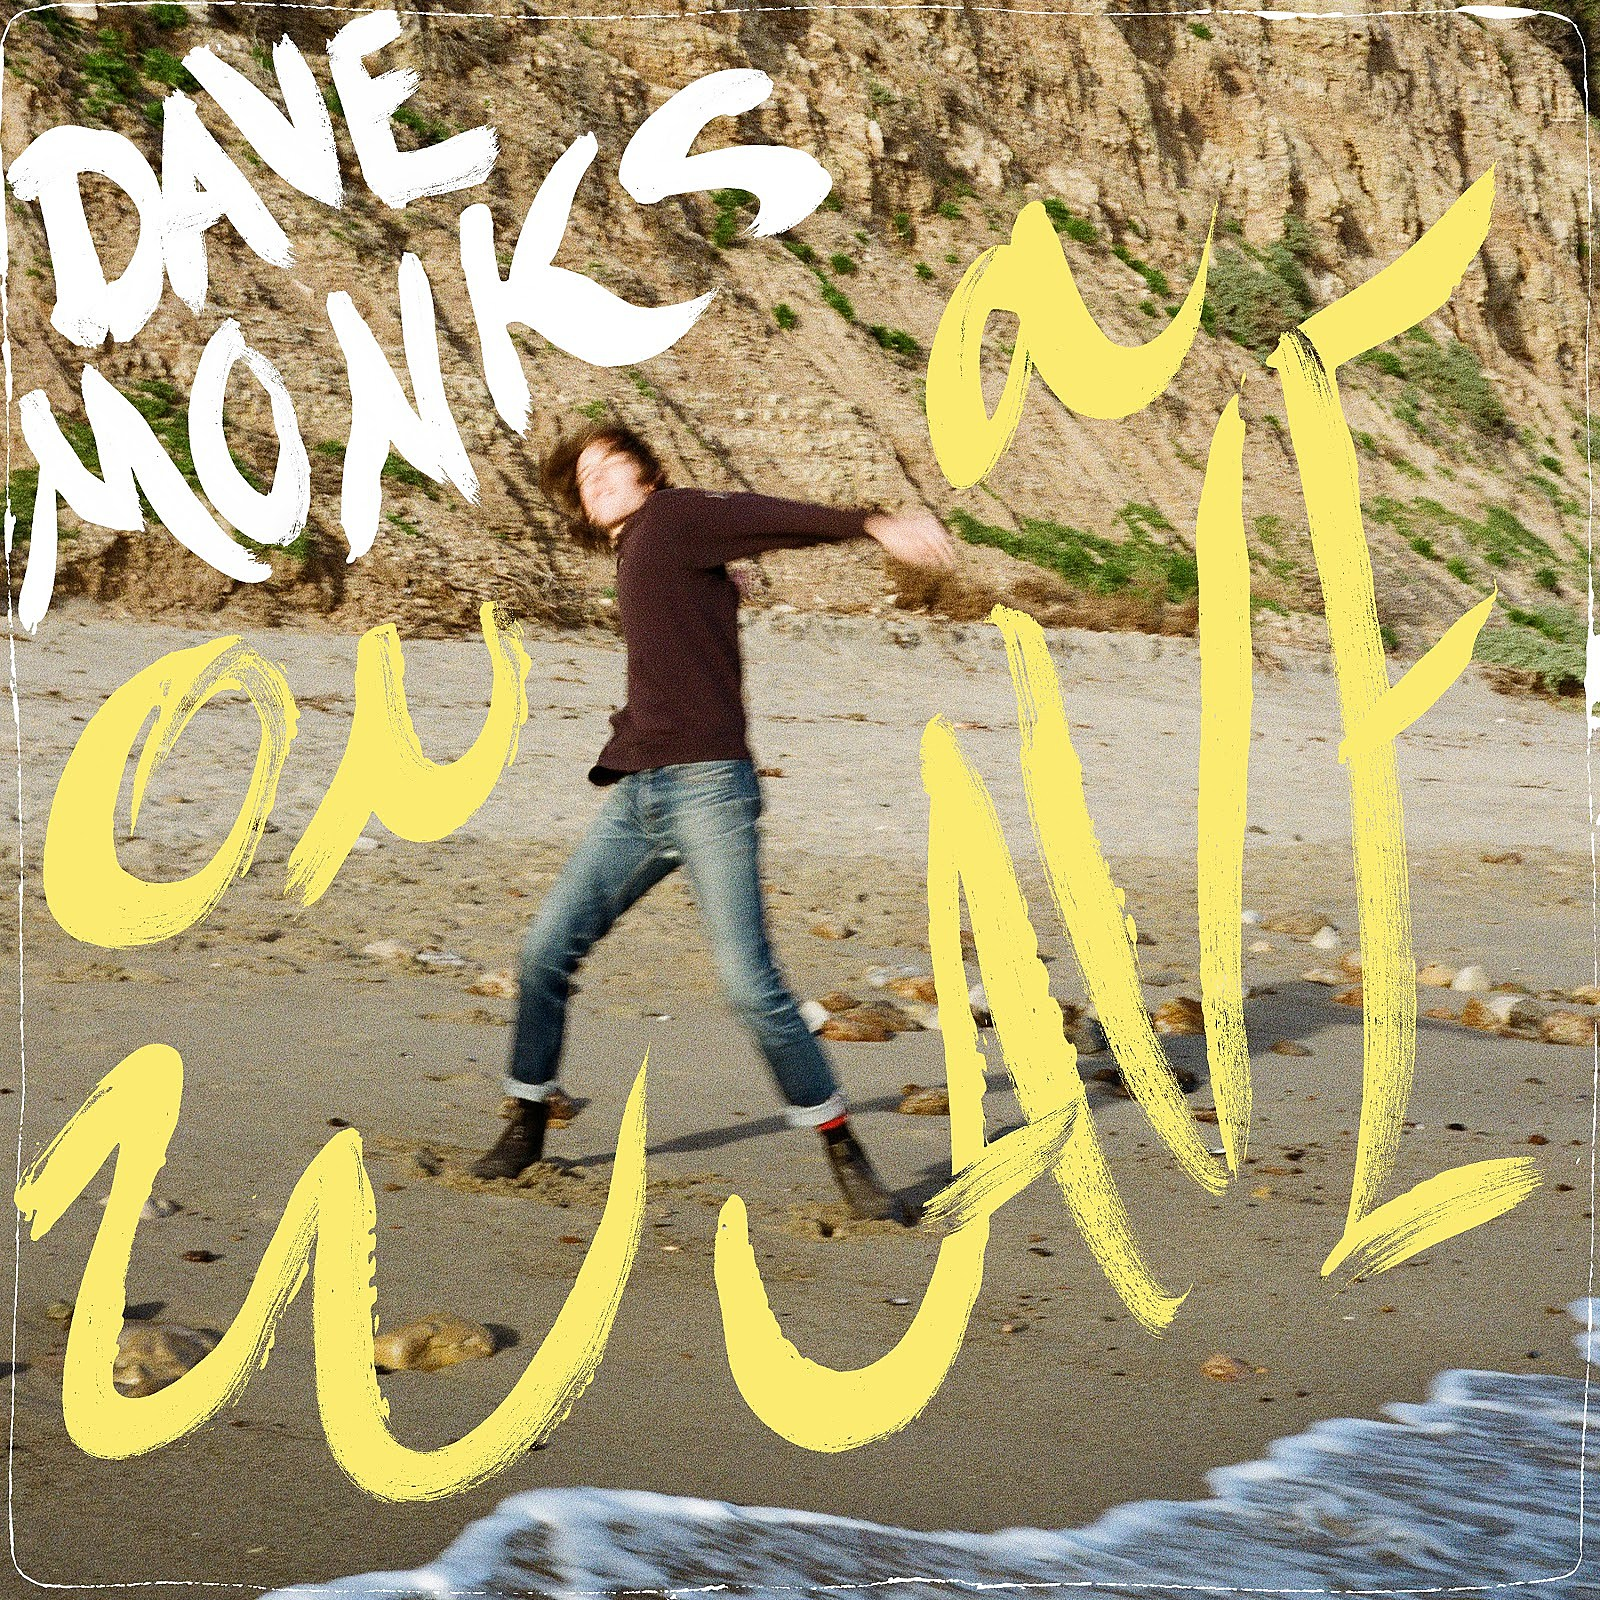 Dave Monks On A Wave